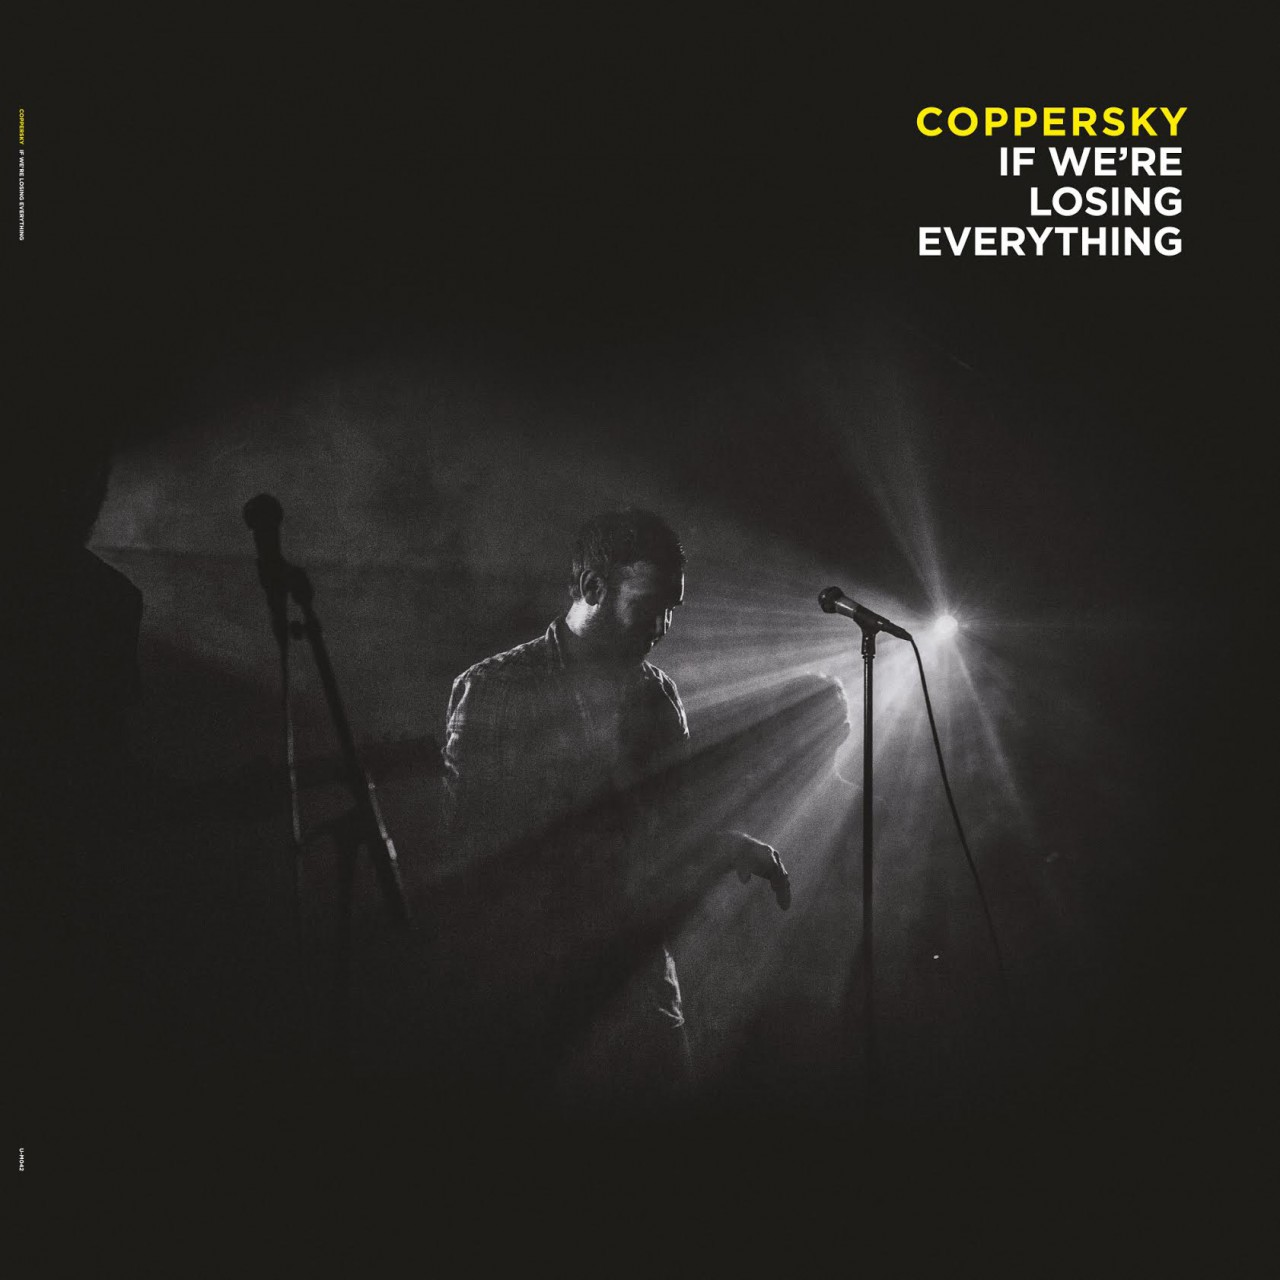 Coppersky – If We're Losing Everything